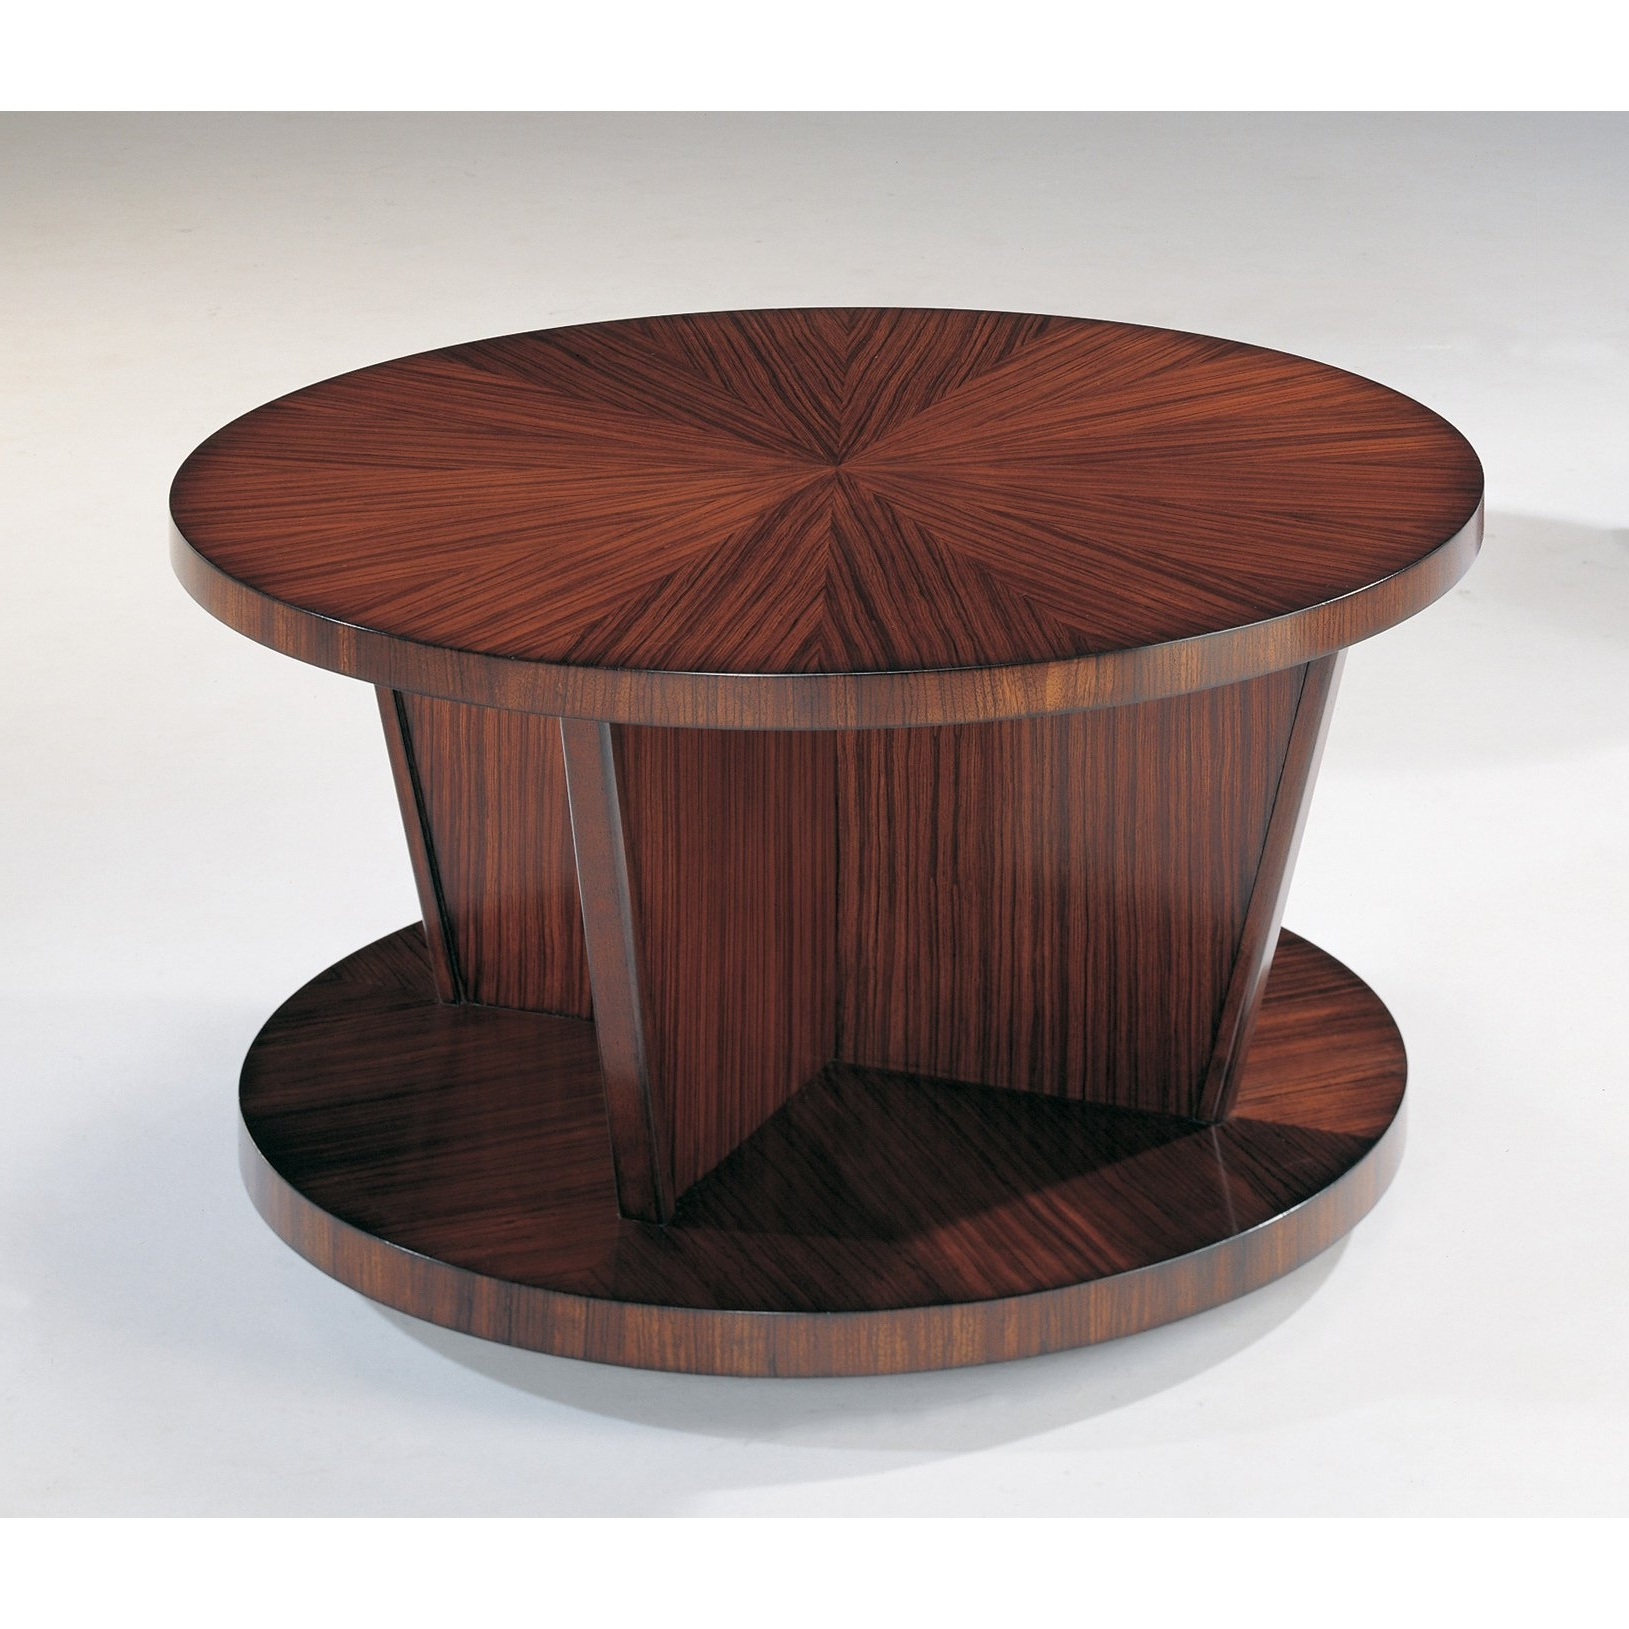 Newest Axis Cocktail Tables Inside Shop Axis Nutmeg Cocktail Table – Free Shipping Today – Overstock (View 11 of 20)